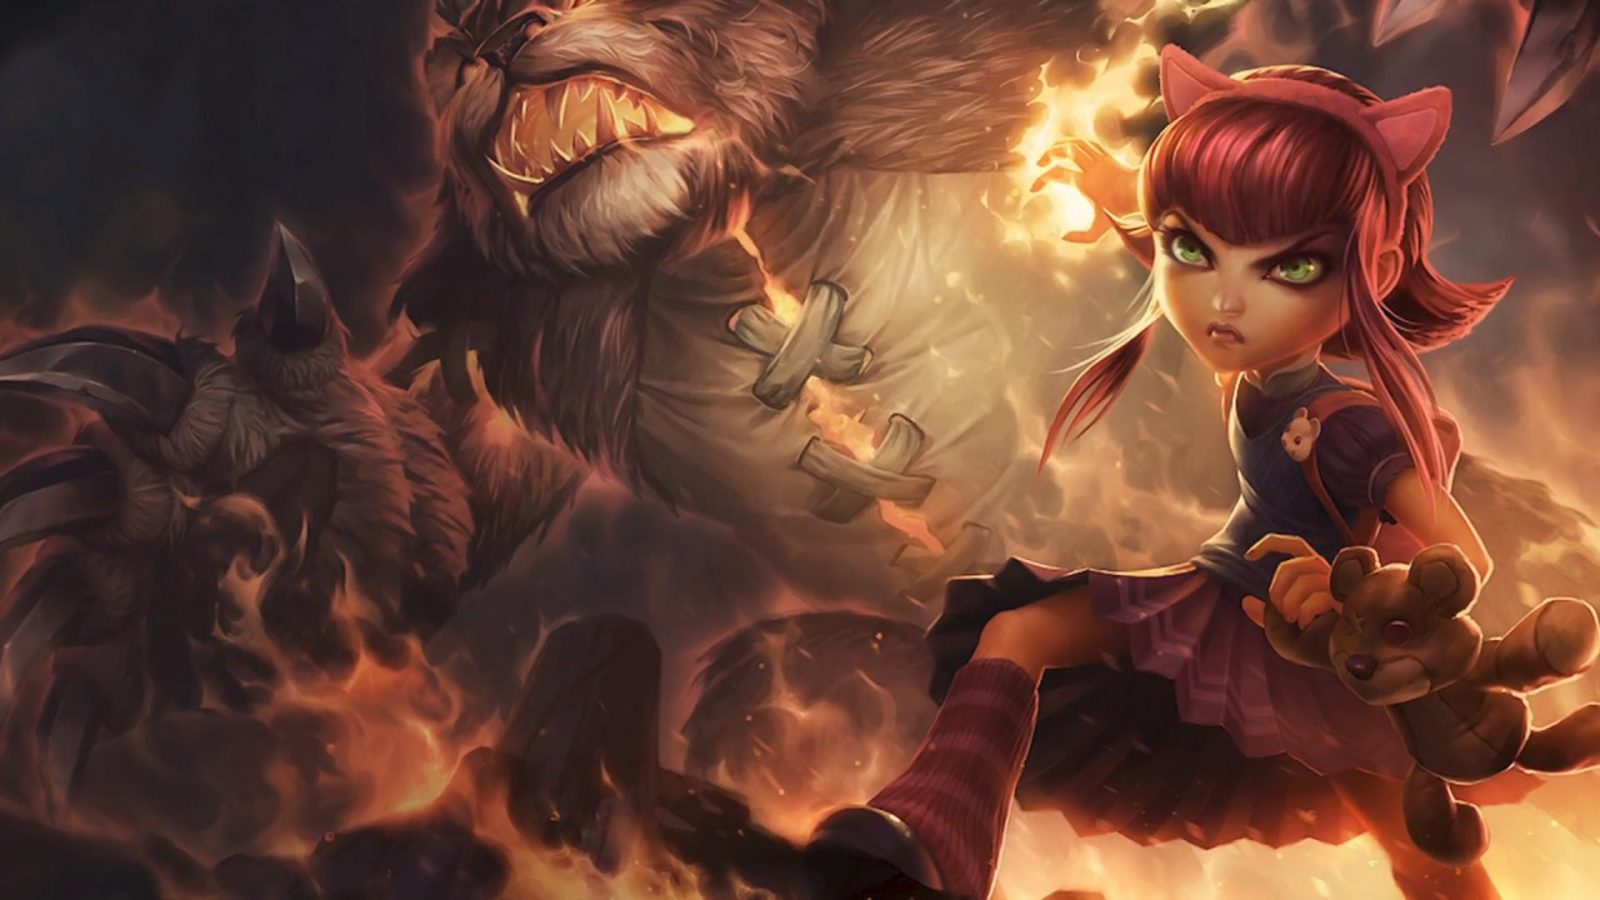 League of Legends is Coming to Mobile and Consoles Next Year